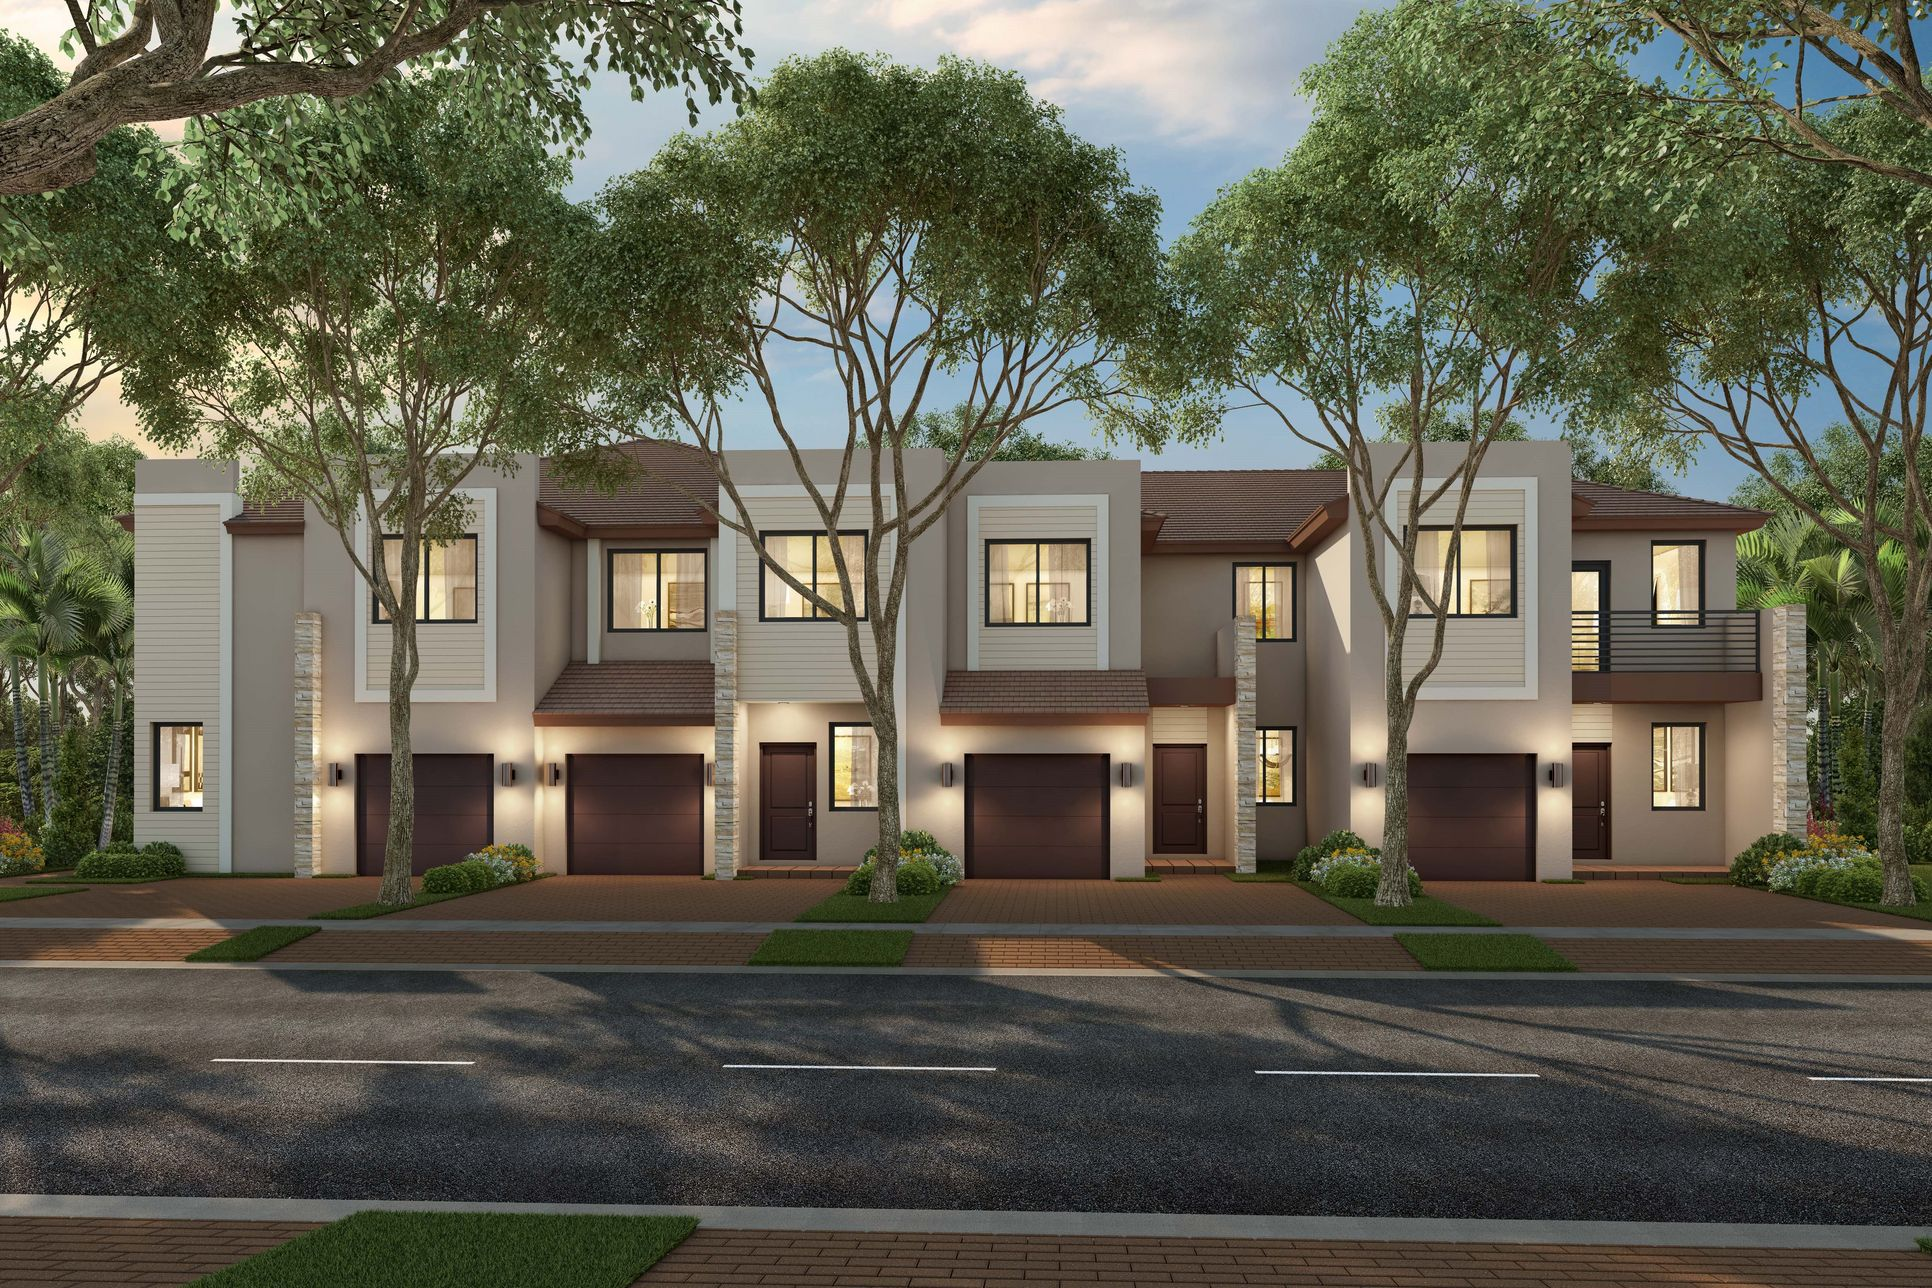 Via Ventura - Townhomes,33179